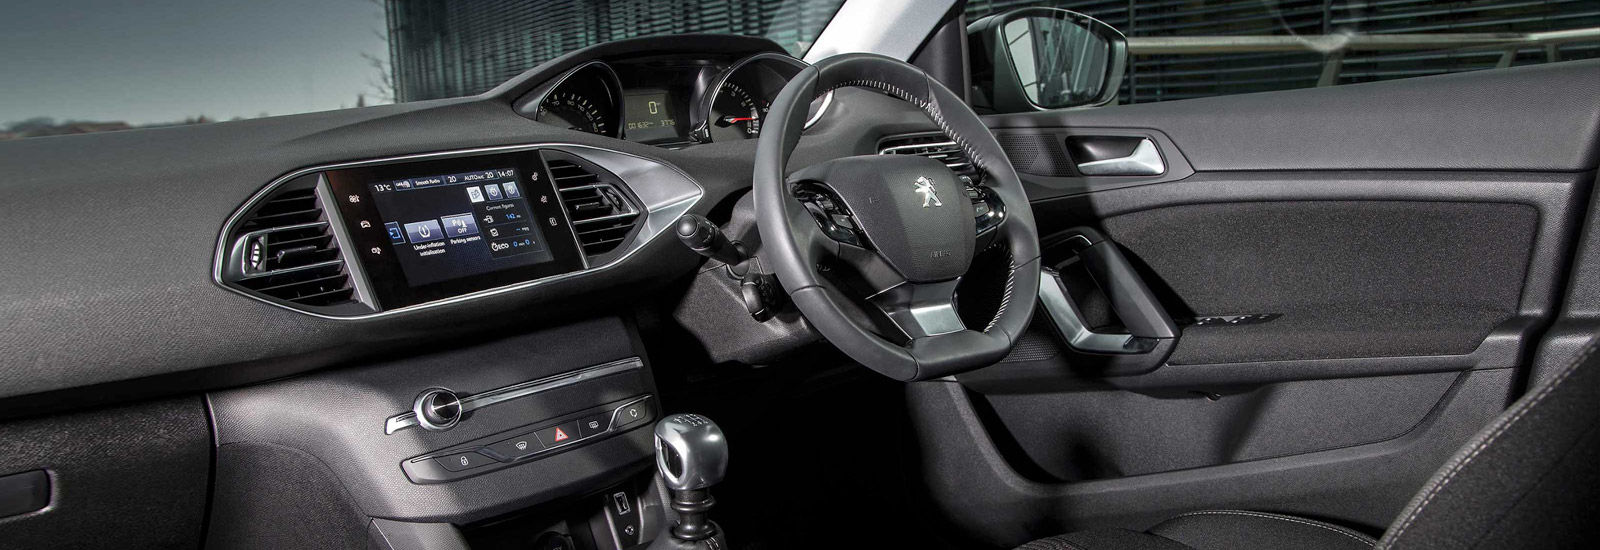 2017 peugeot 3008 suv price specs release date carwow for Peugeot 3008 interior